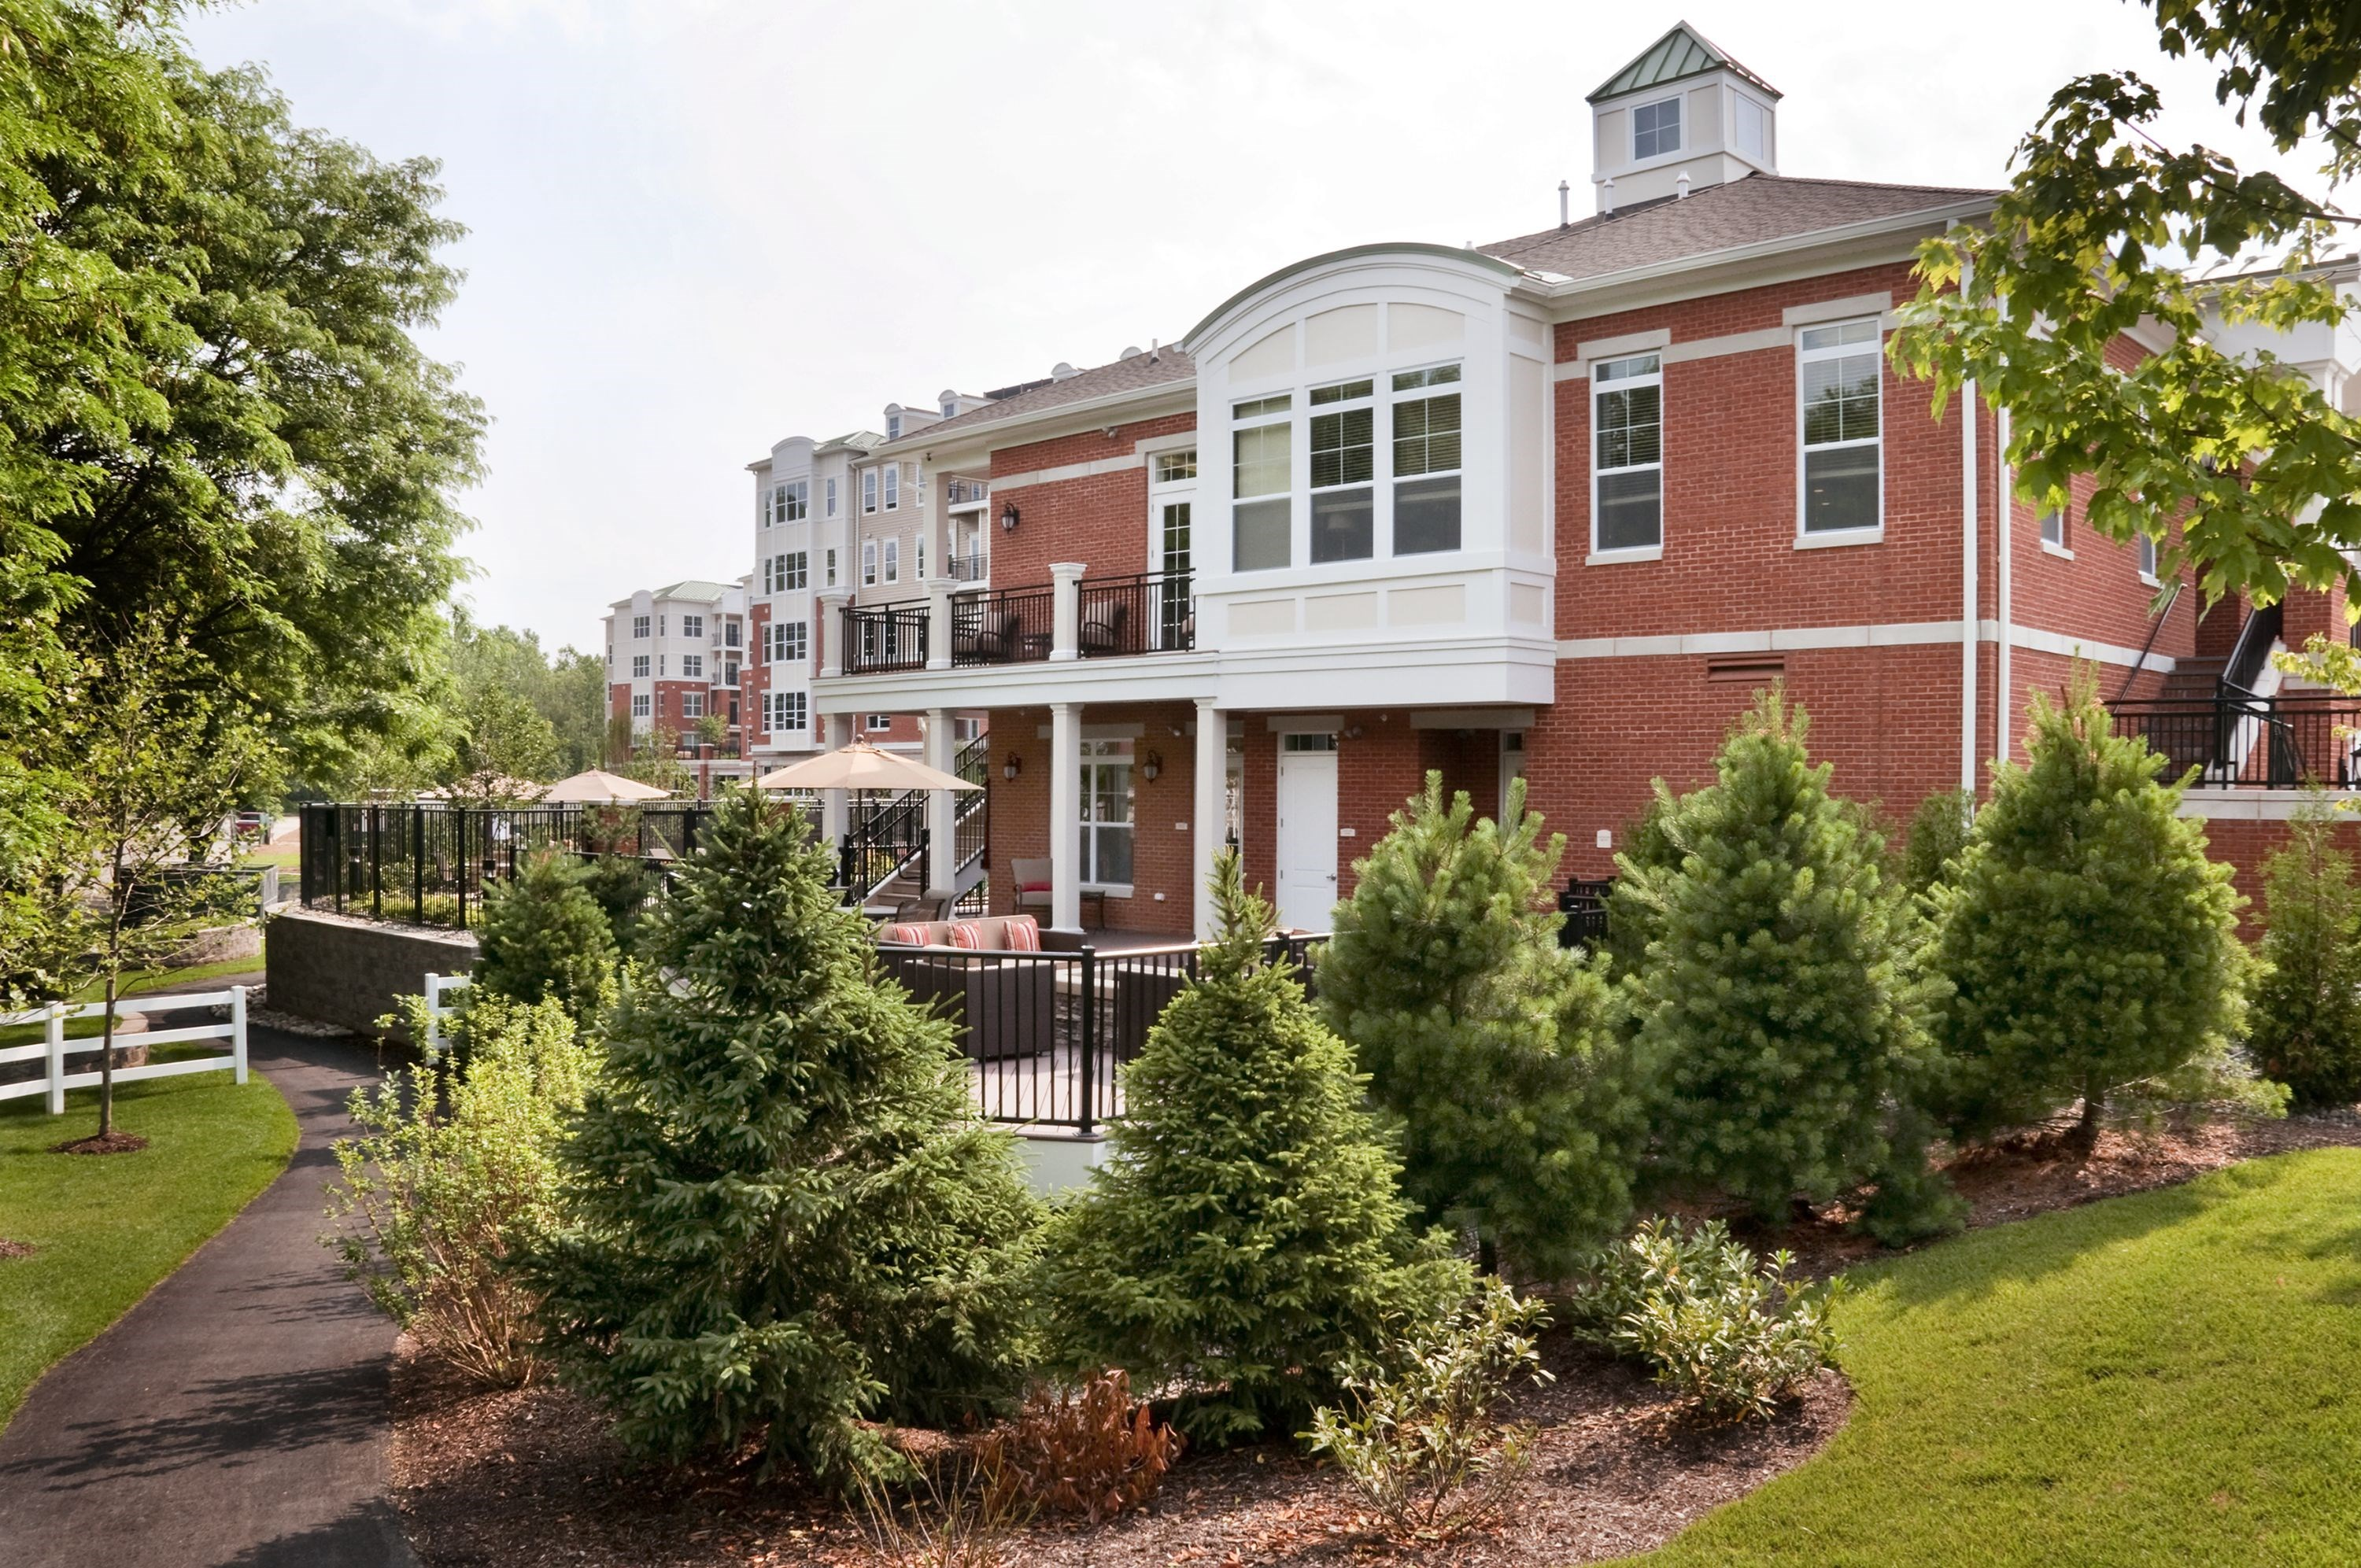 Exterior at The Reserve at Riverdale Apartments in Riverdale, NJ